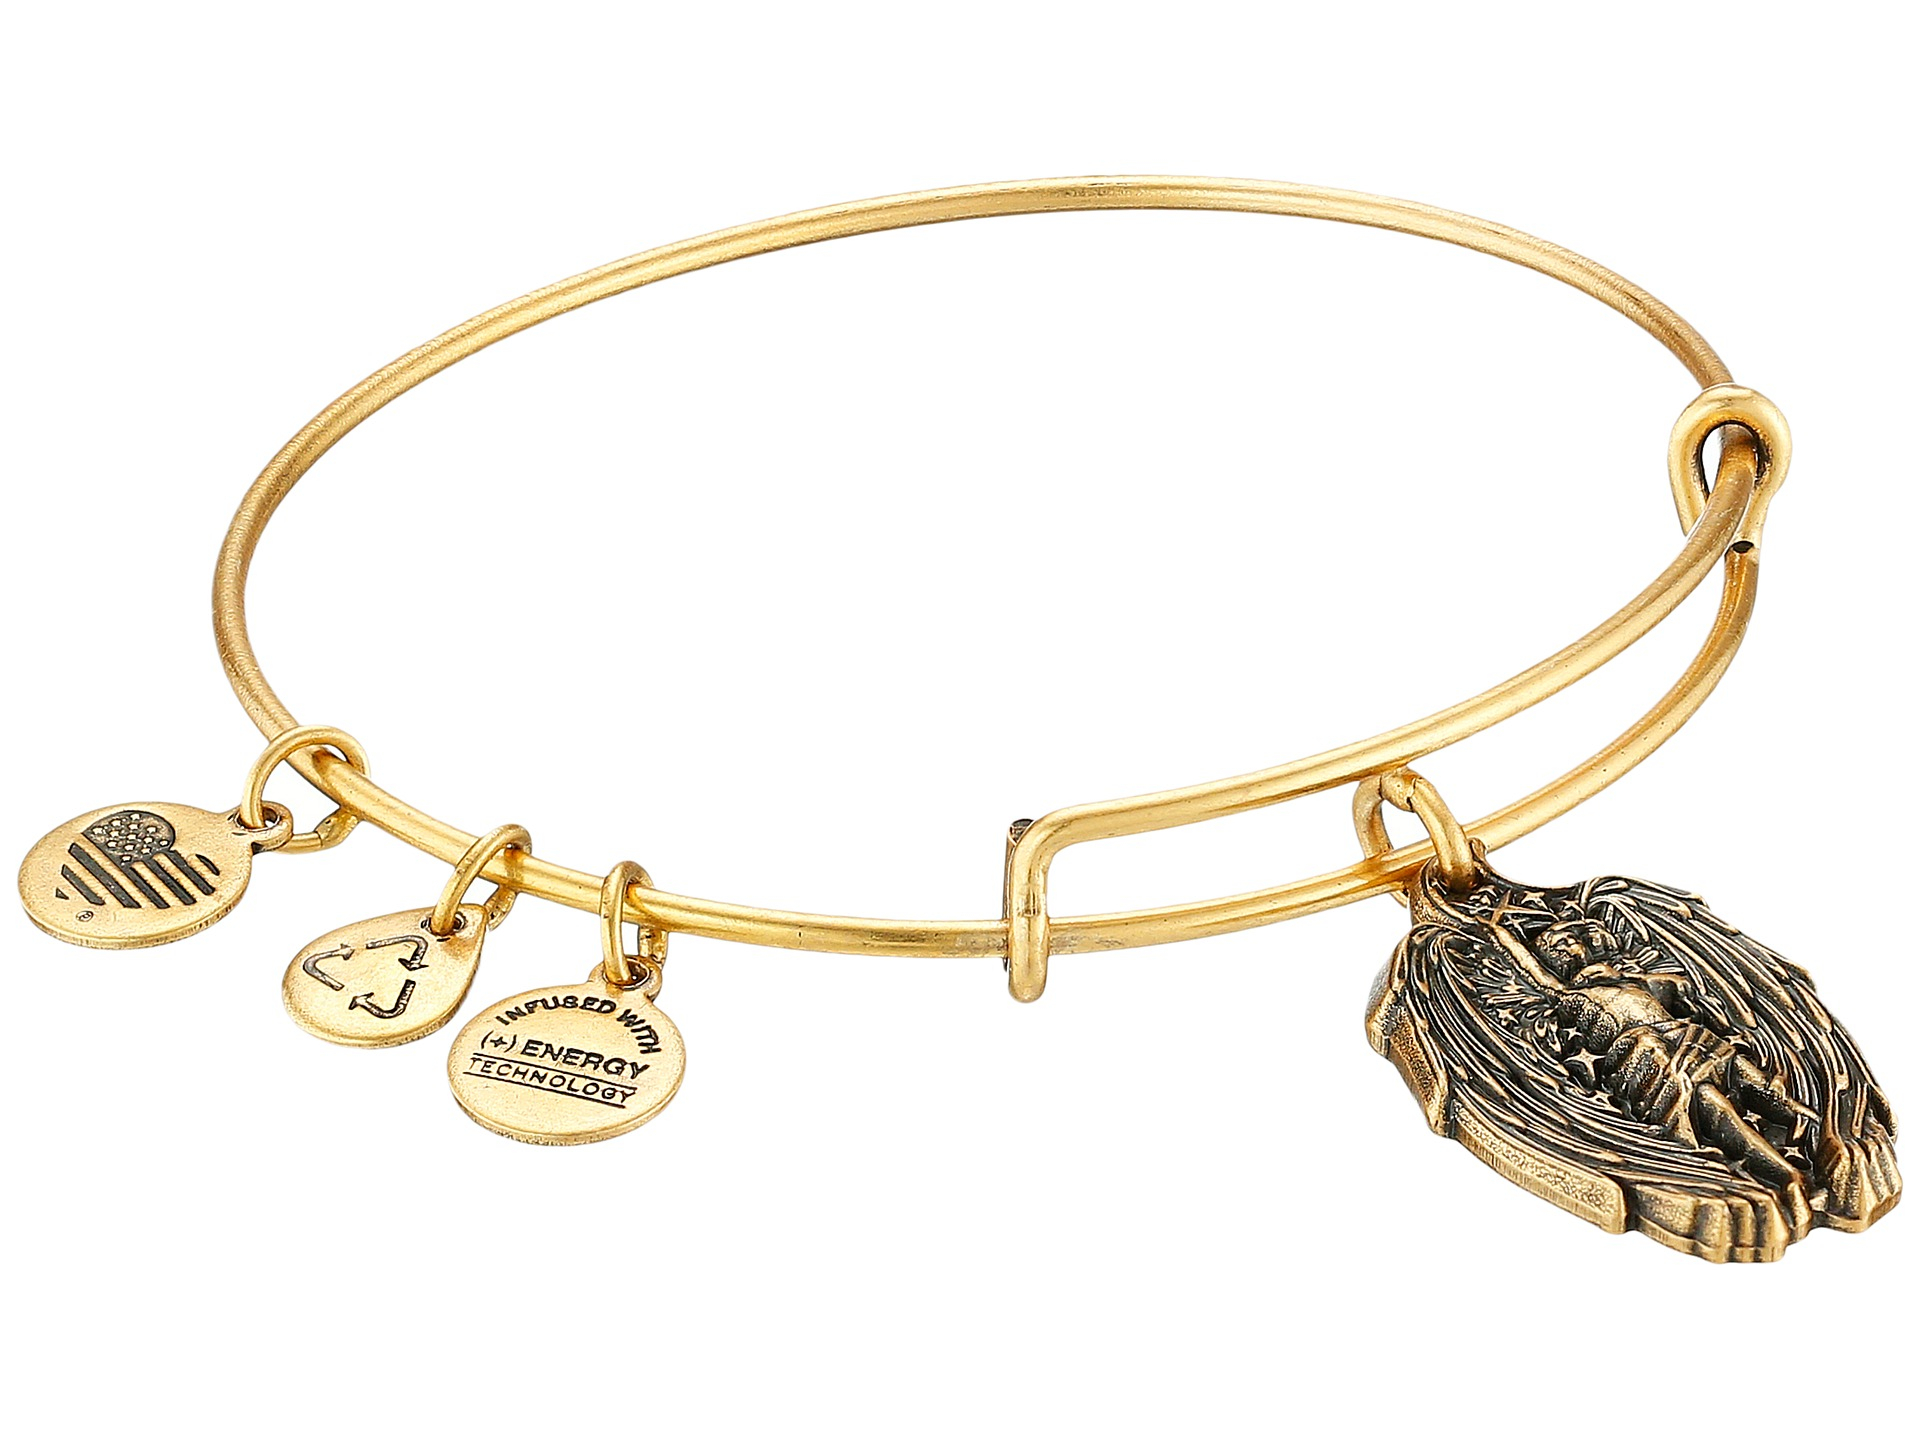 alex and ani guardian of strength charm bangle in gold